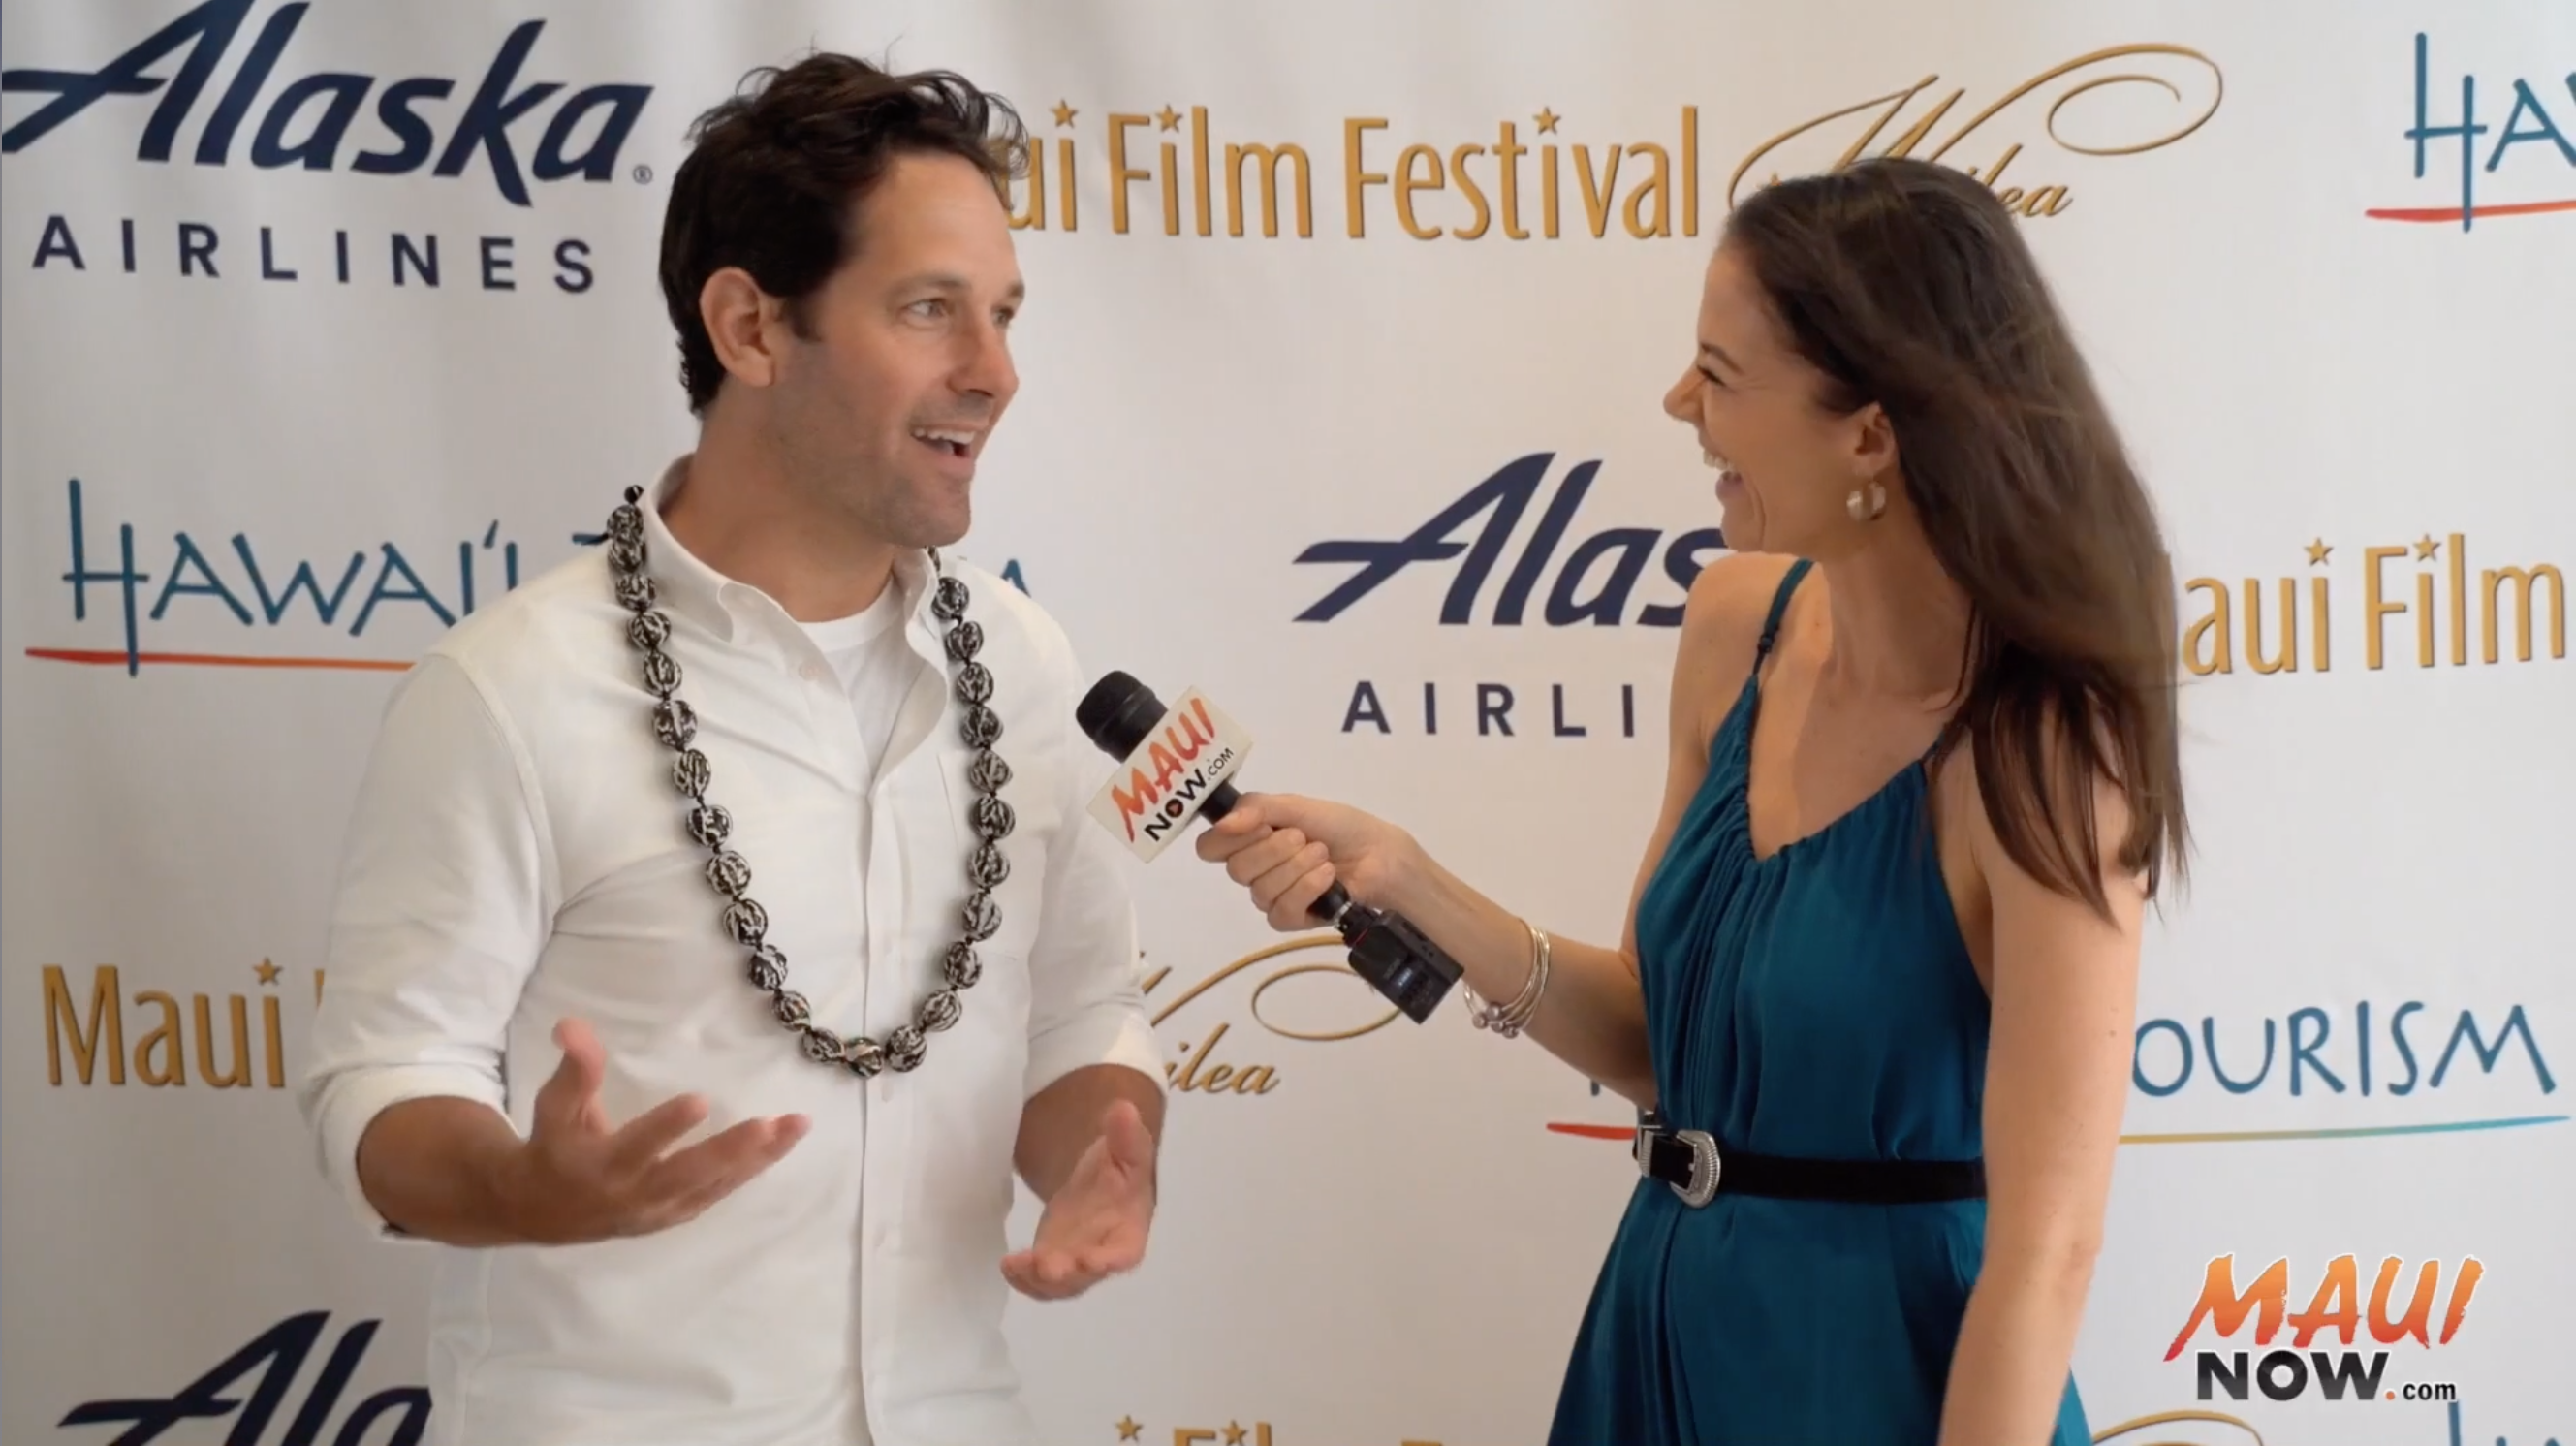 Malika Interviews Paul Rudd, Maui Film Festival Nova Award Recipient